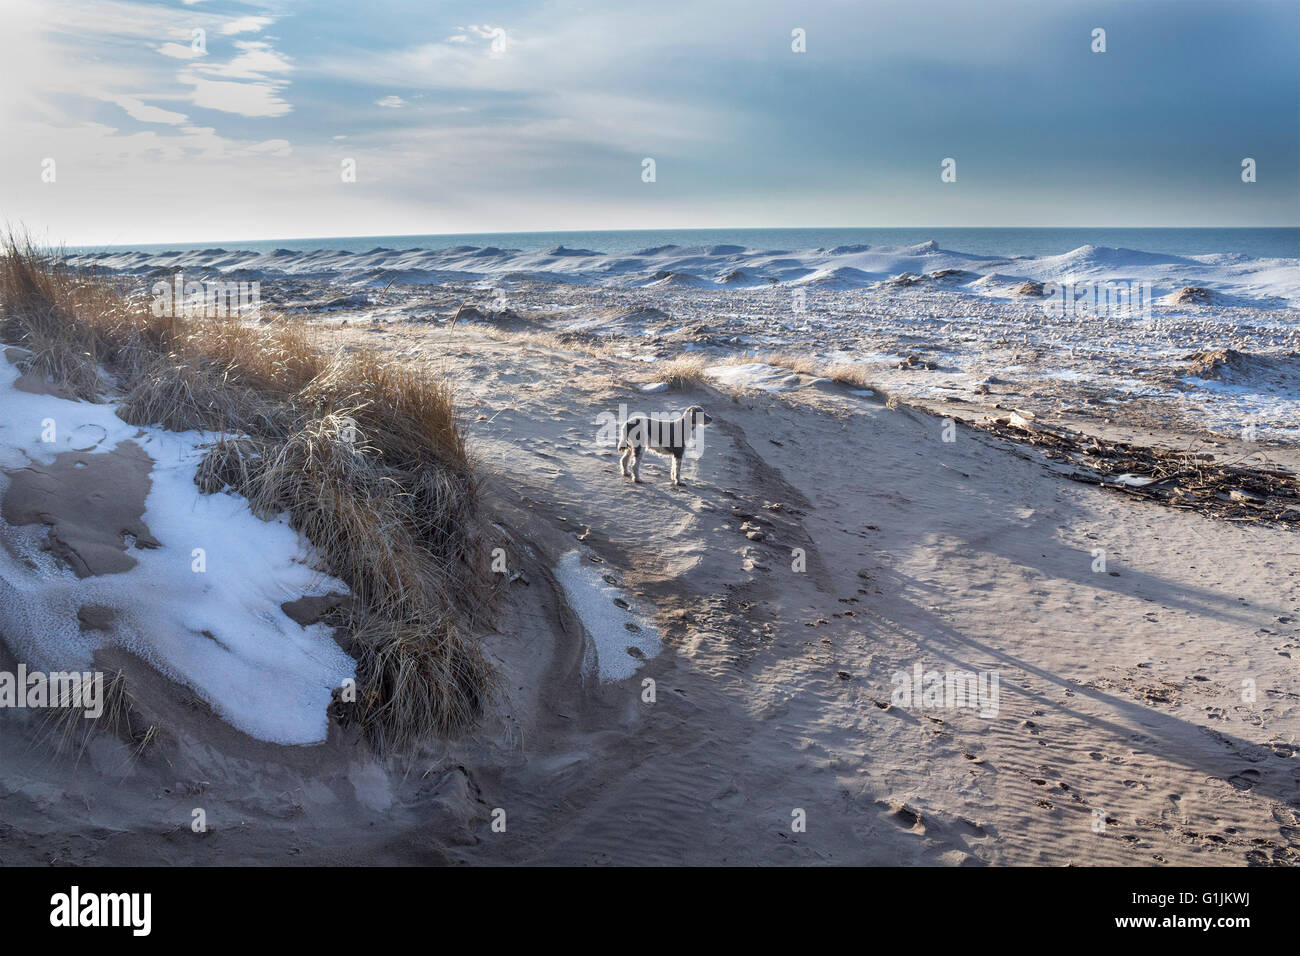 standard-poodle-stands-in-the-sand-on-the-beach-of-a-frozen-lake-huron-G1JKWJ.jpg